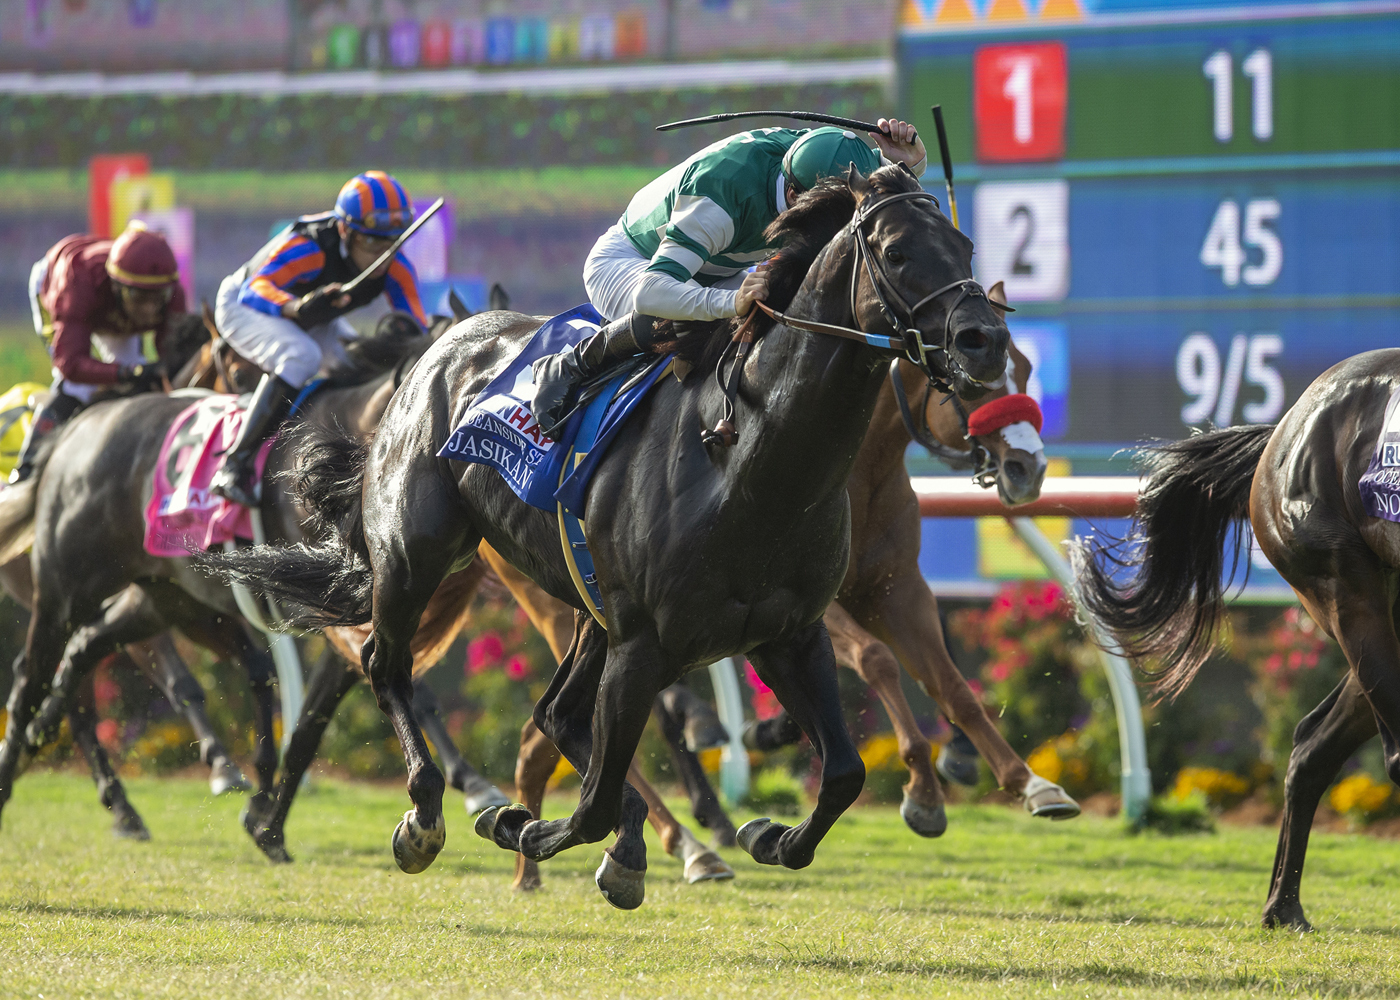 Horses racing on opening day of Del Mar Thoroughbred Club's 80th summer racing season, in Del Mar, Calif. on July 17, 2019.